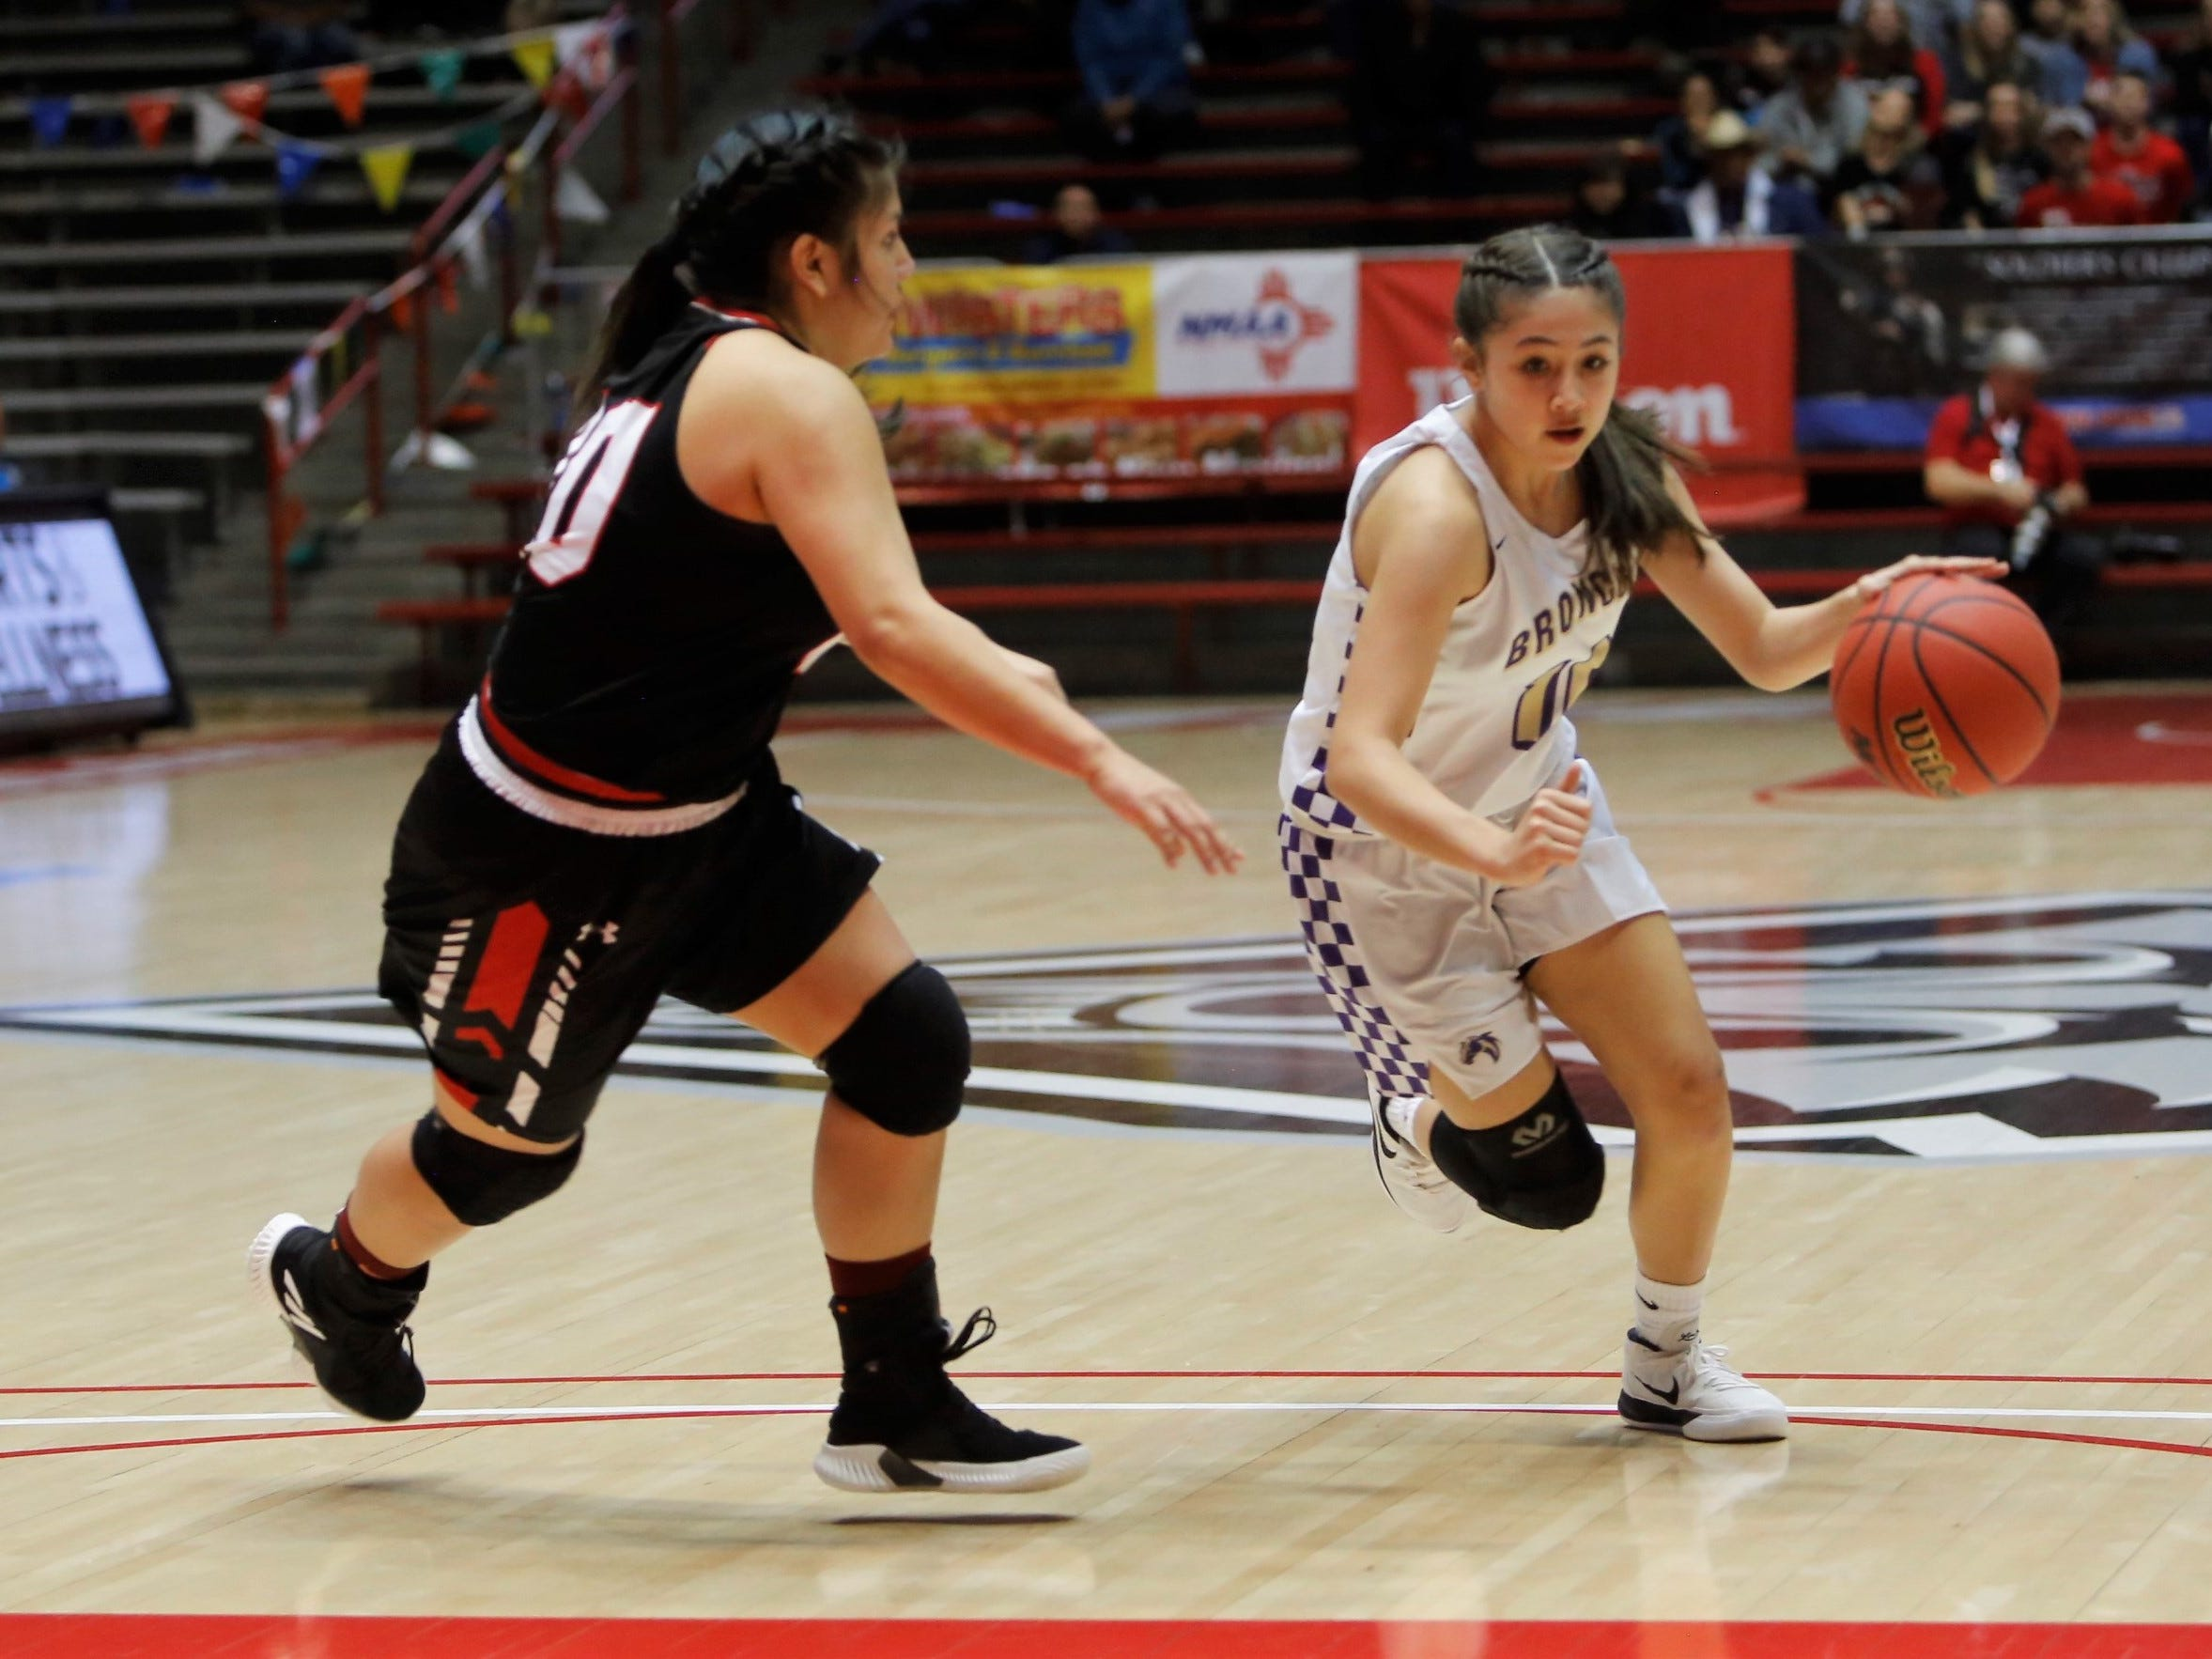 Kirtland Central's Monique Shim drives toward the basket against Portales' Codi Flores during Tuesday's 4A state quarterfinals game at Dreamstyle Arena in Albuquerque.